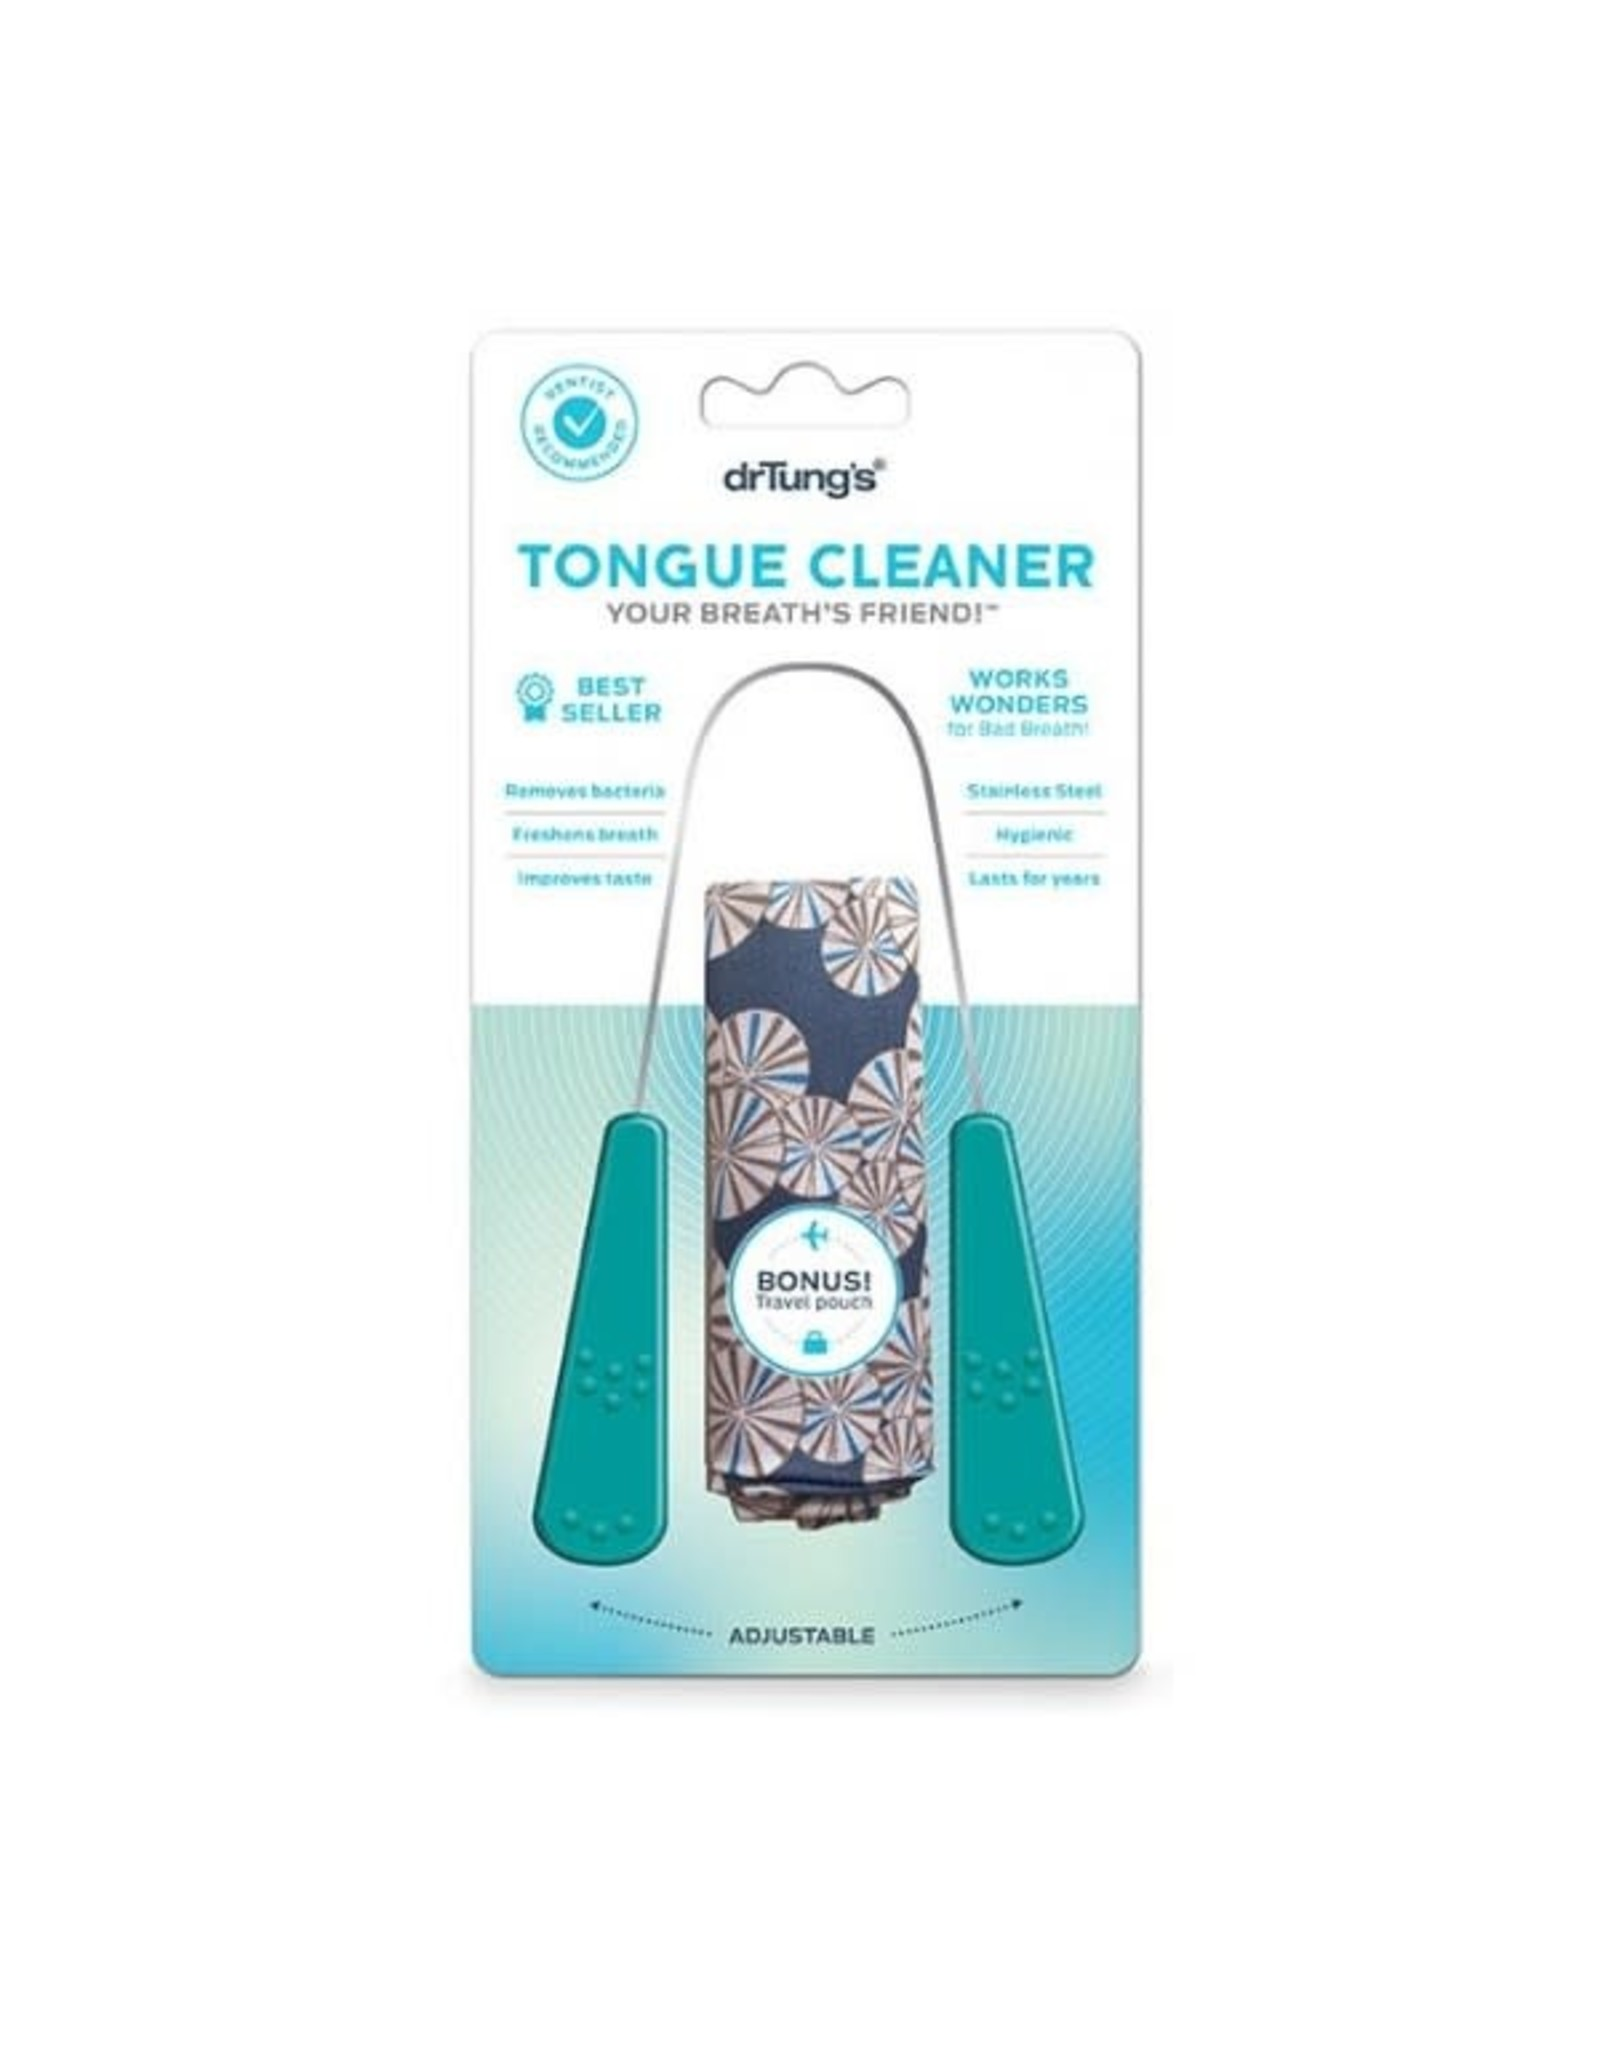 Dr Tung's Tongue Cleaner Stainless Steel